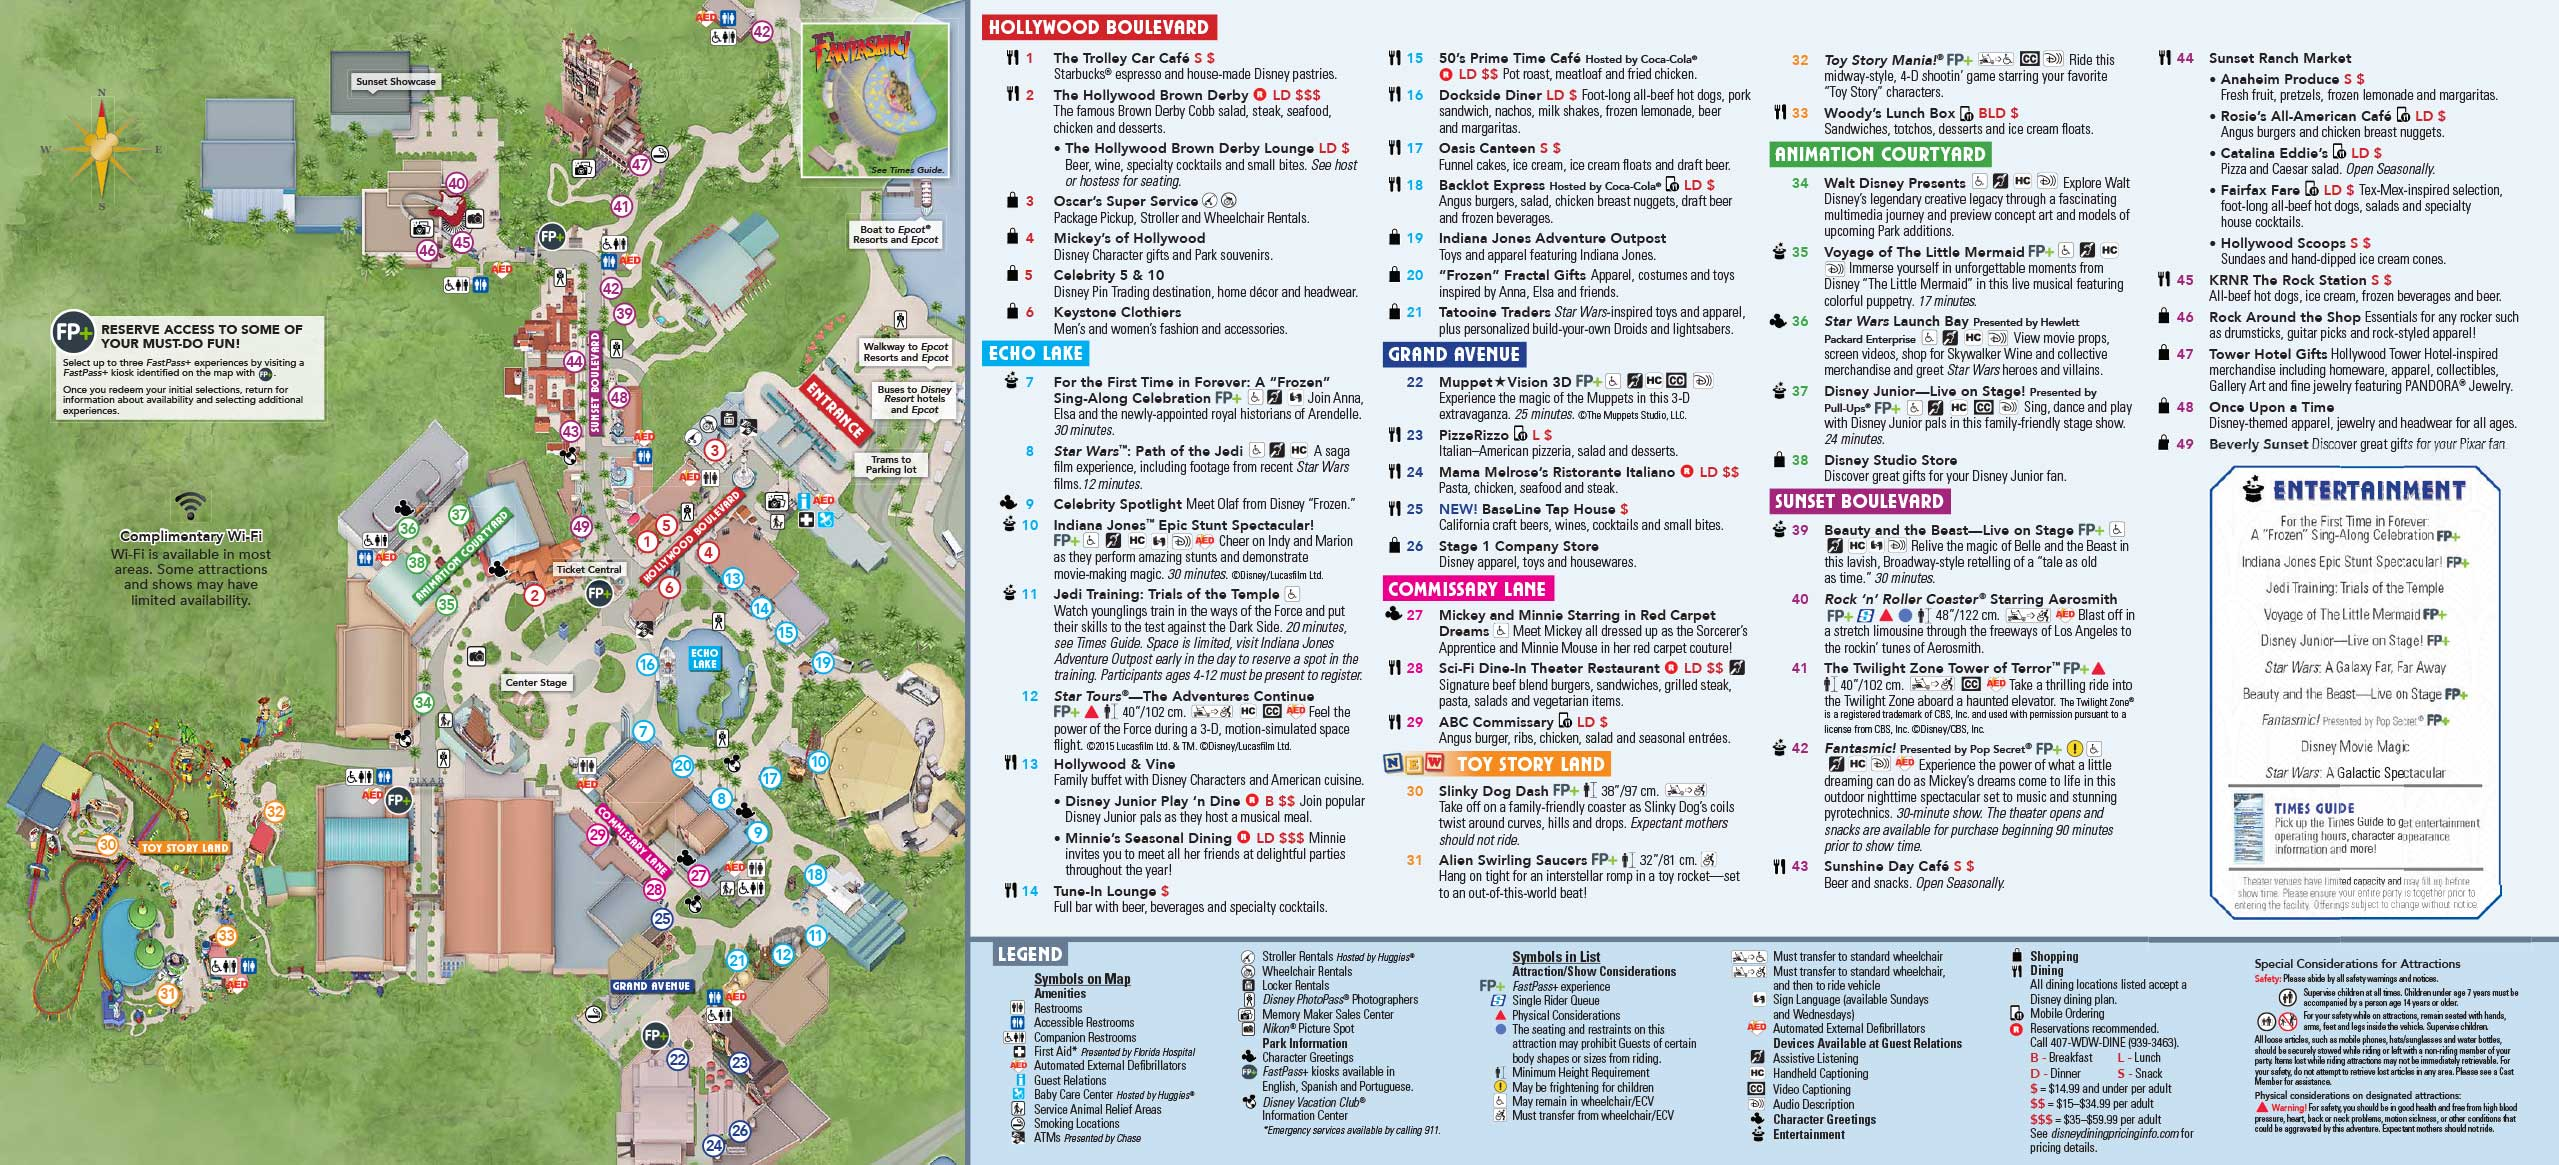 PHOTOS - New Guide Map for Disney\'s Hollywood Studios